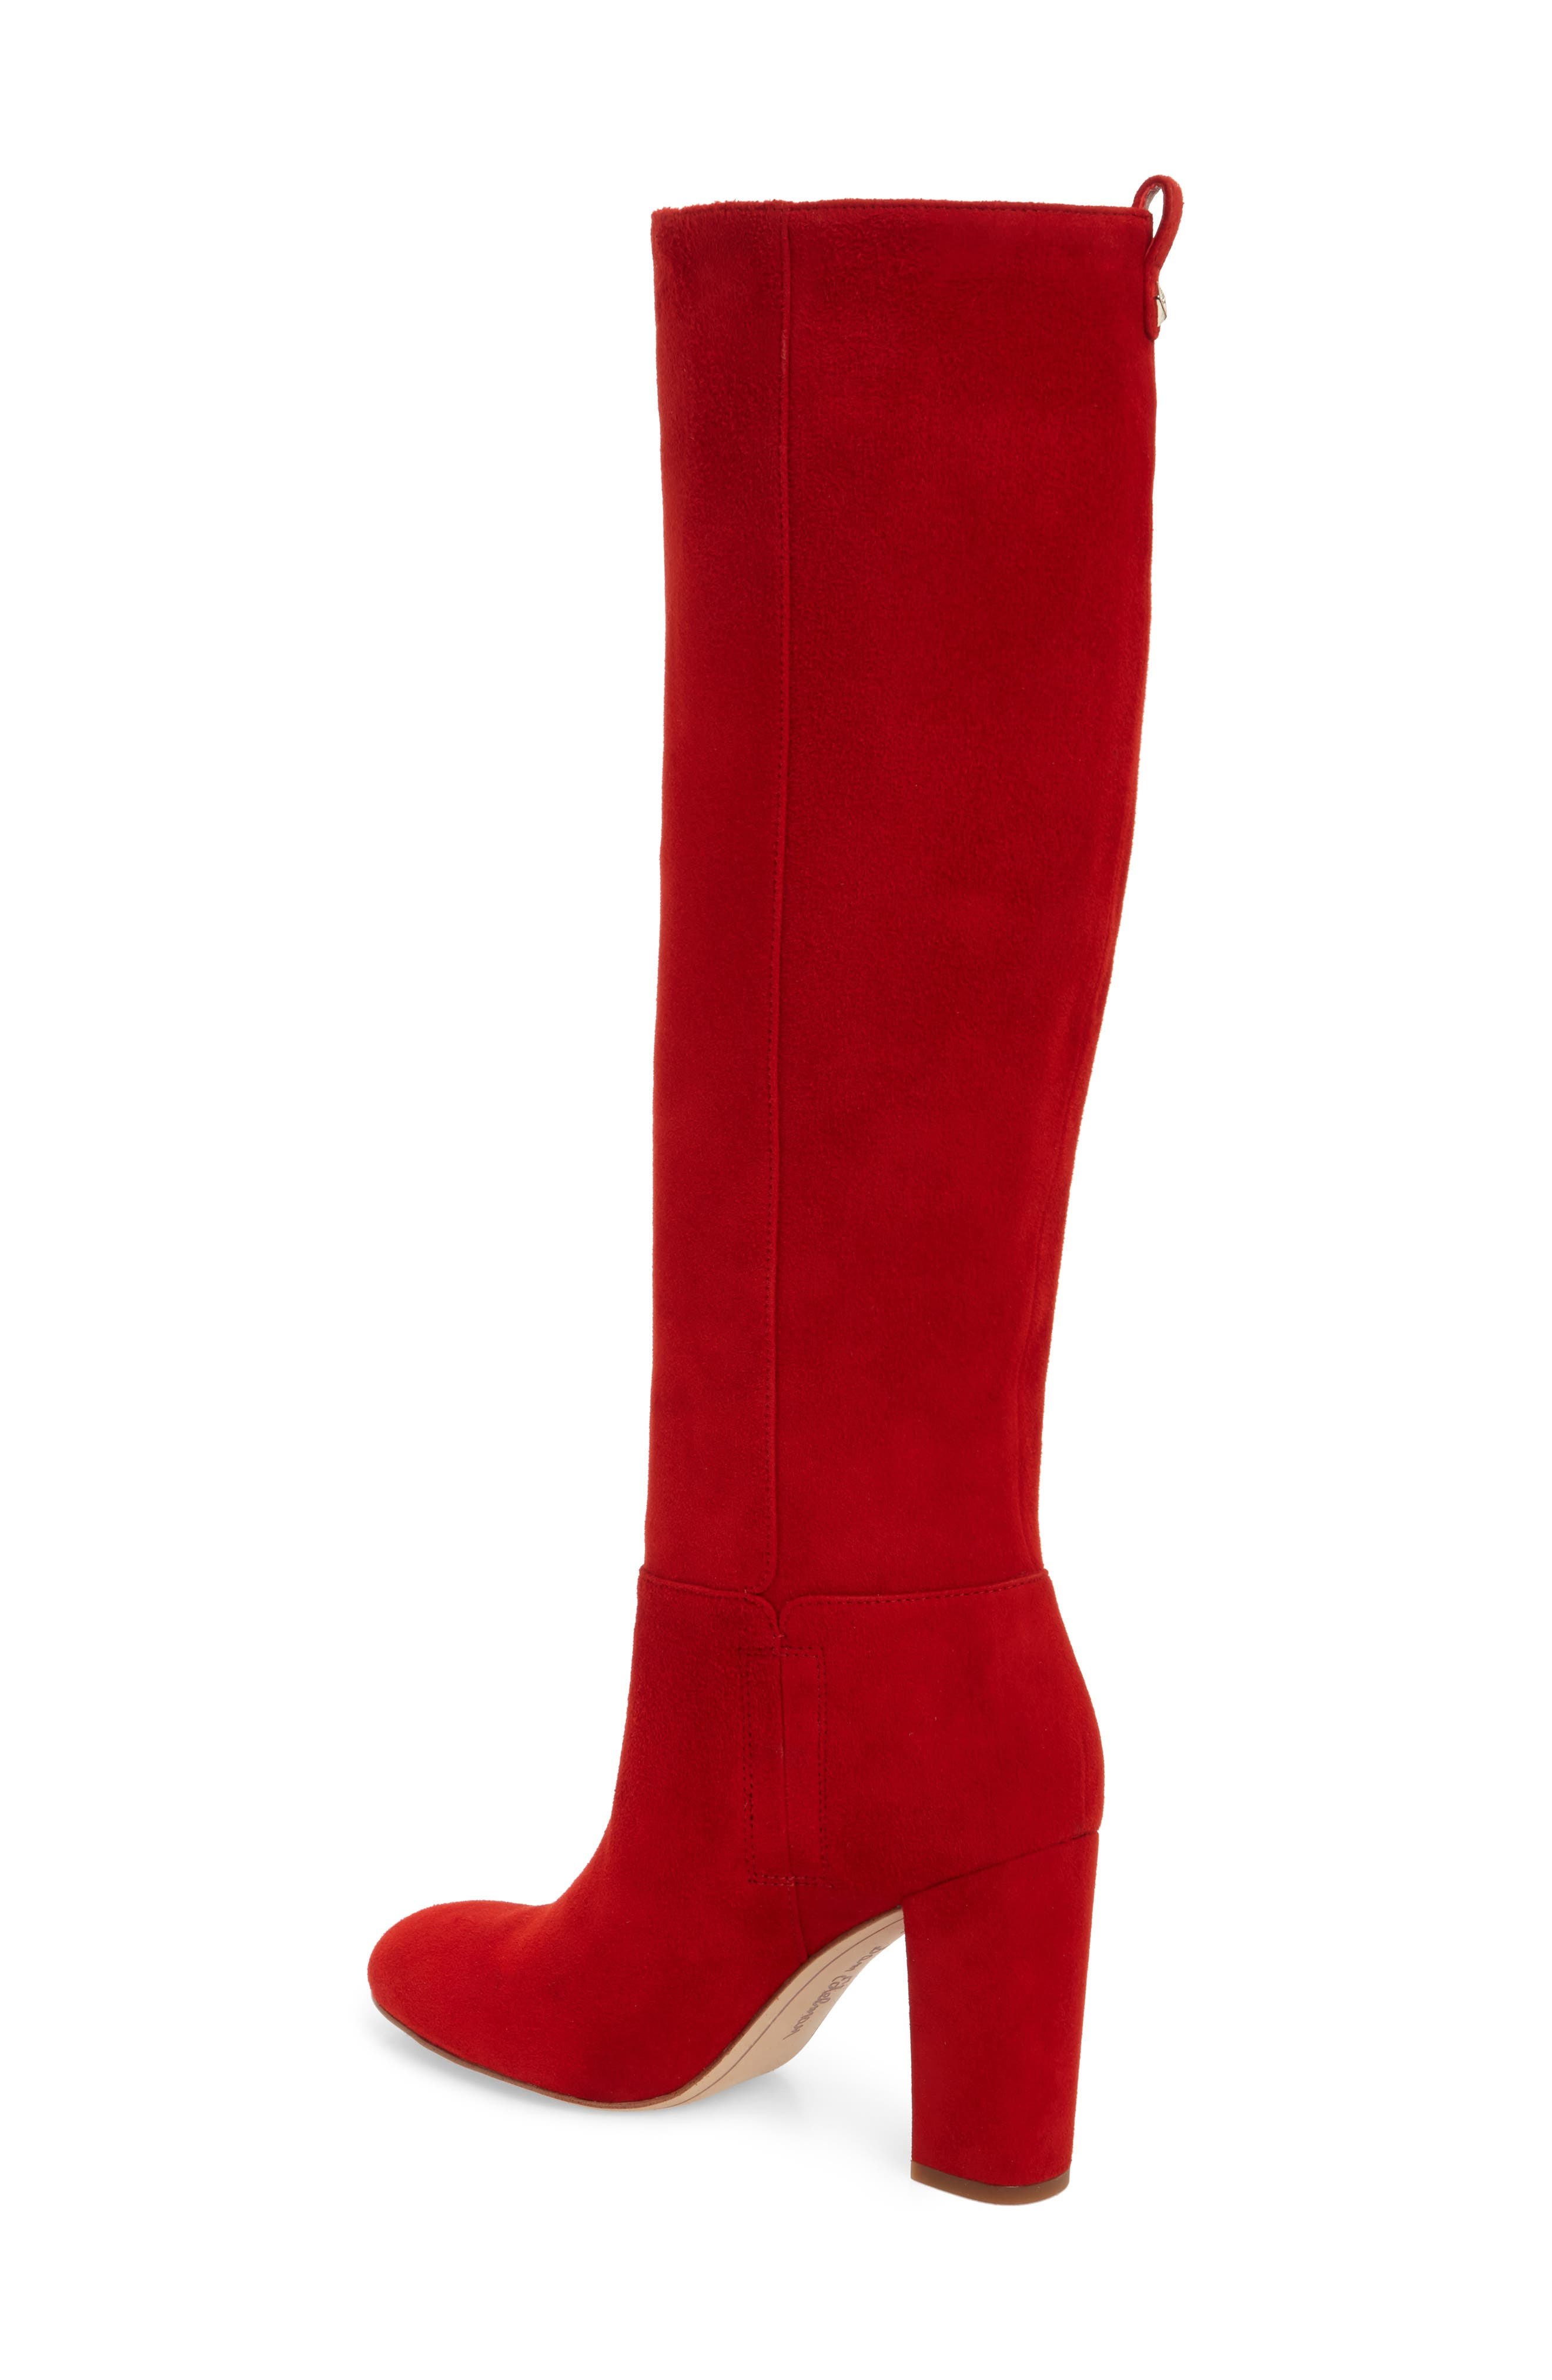 Caprice Knee-High Boot,                             Alternate thumbnail 2, color,                             CANDY RED SUEDE